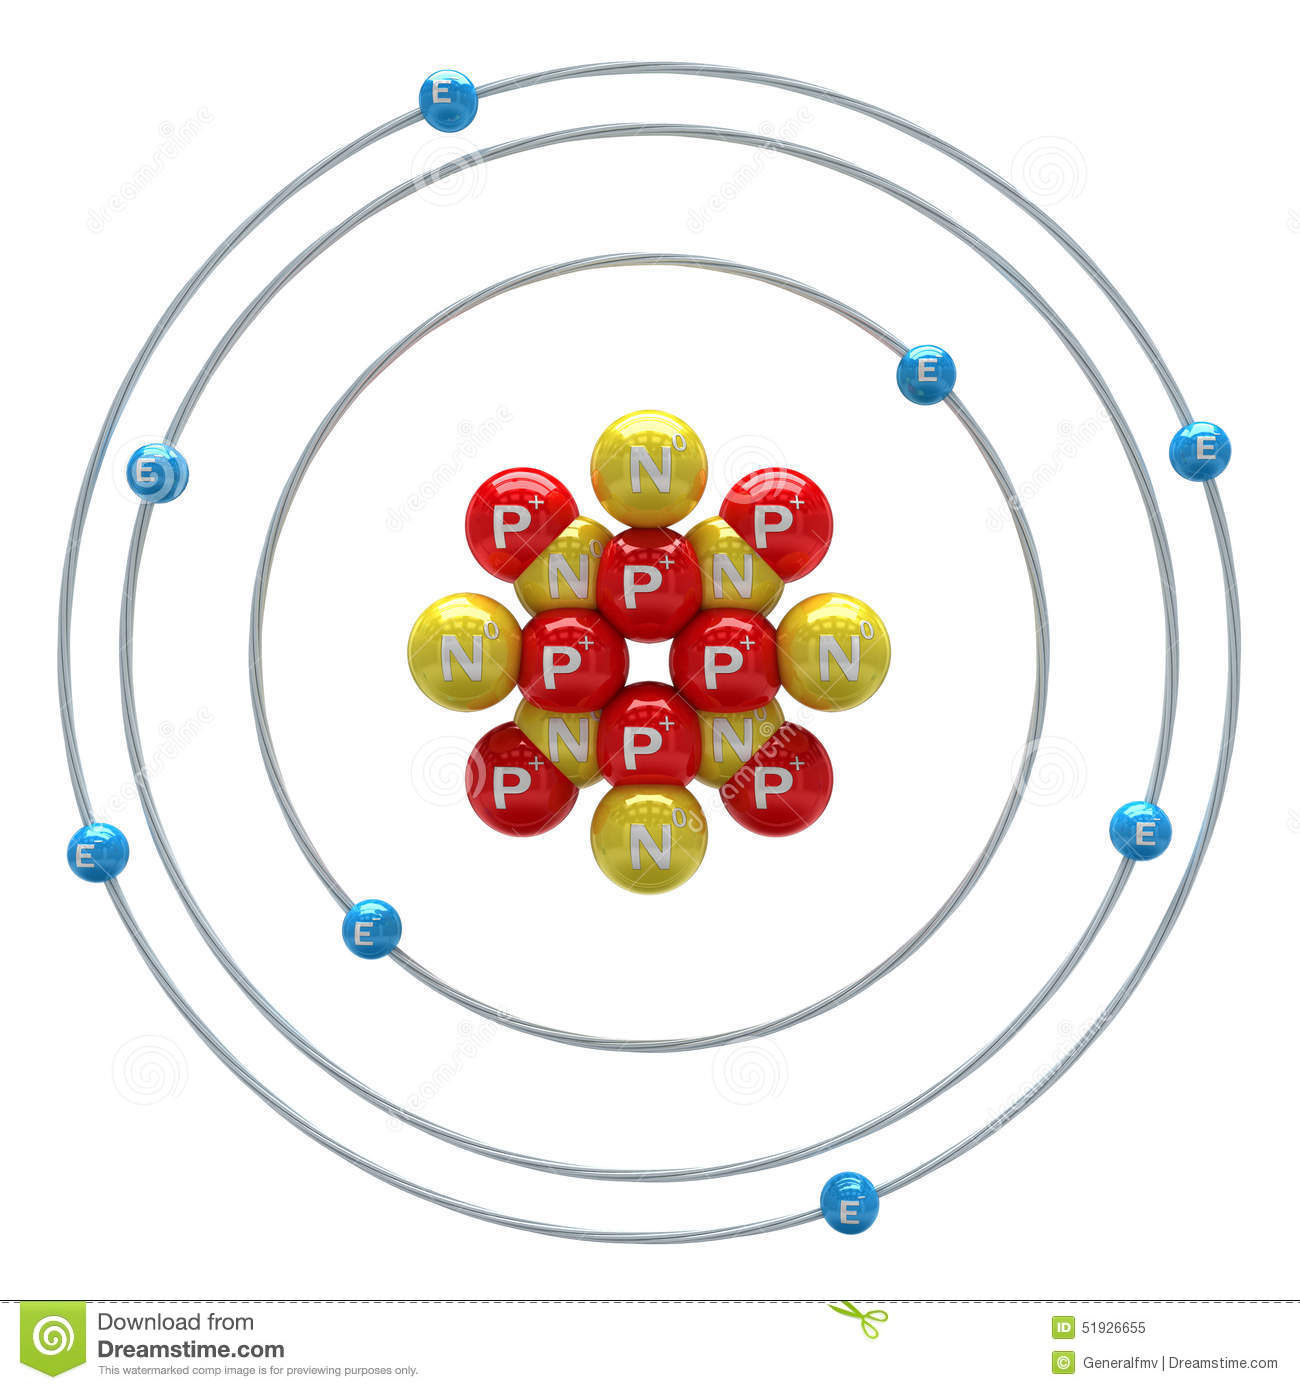 diagram of an atom with labels hopkins 7 blade wiring oxygen on white background stock illustration